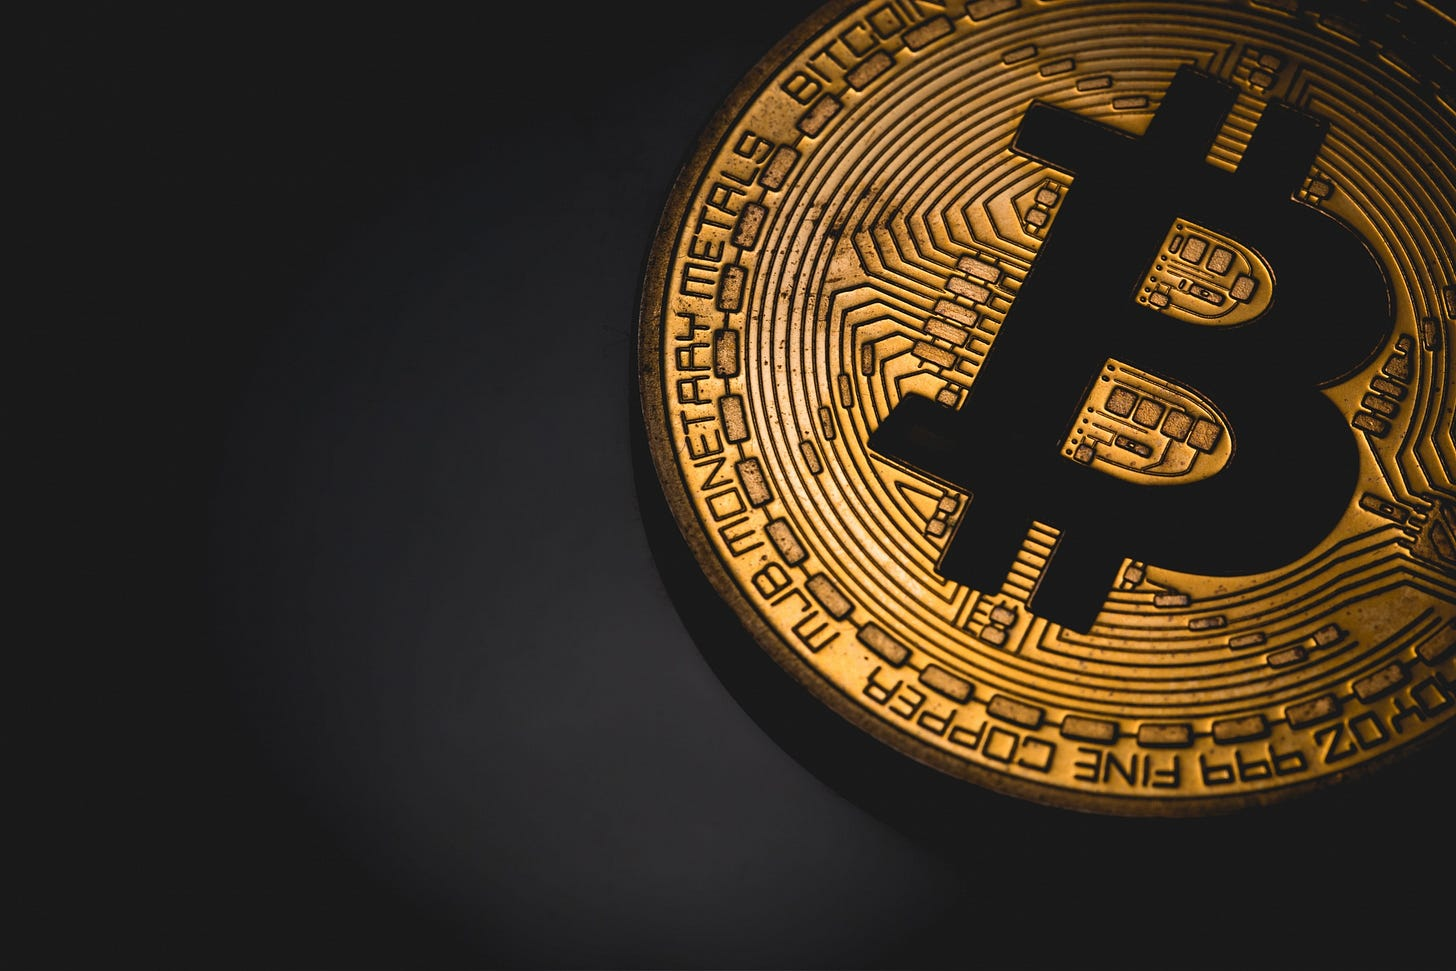 Bitcoin Price Soars To Its Highest Level In 3 Years - Boss Hunting